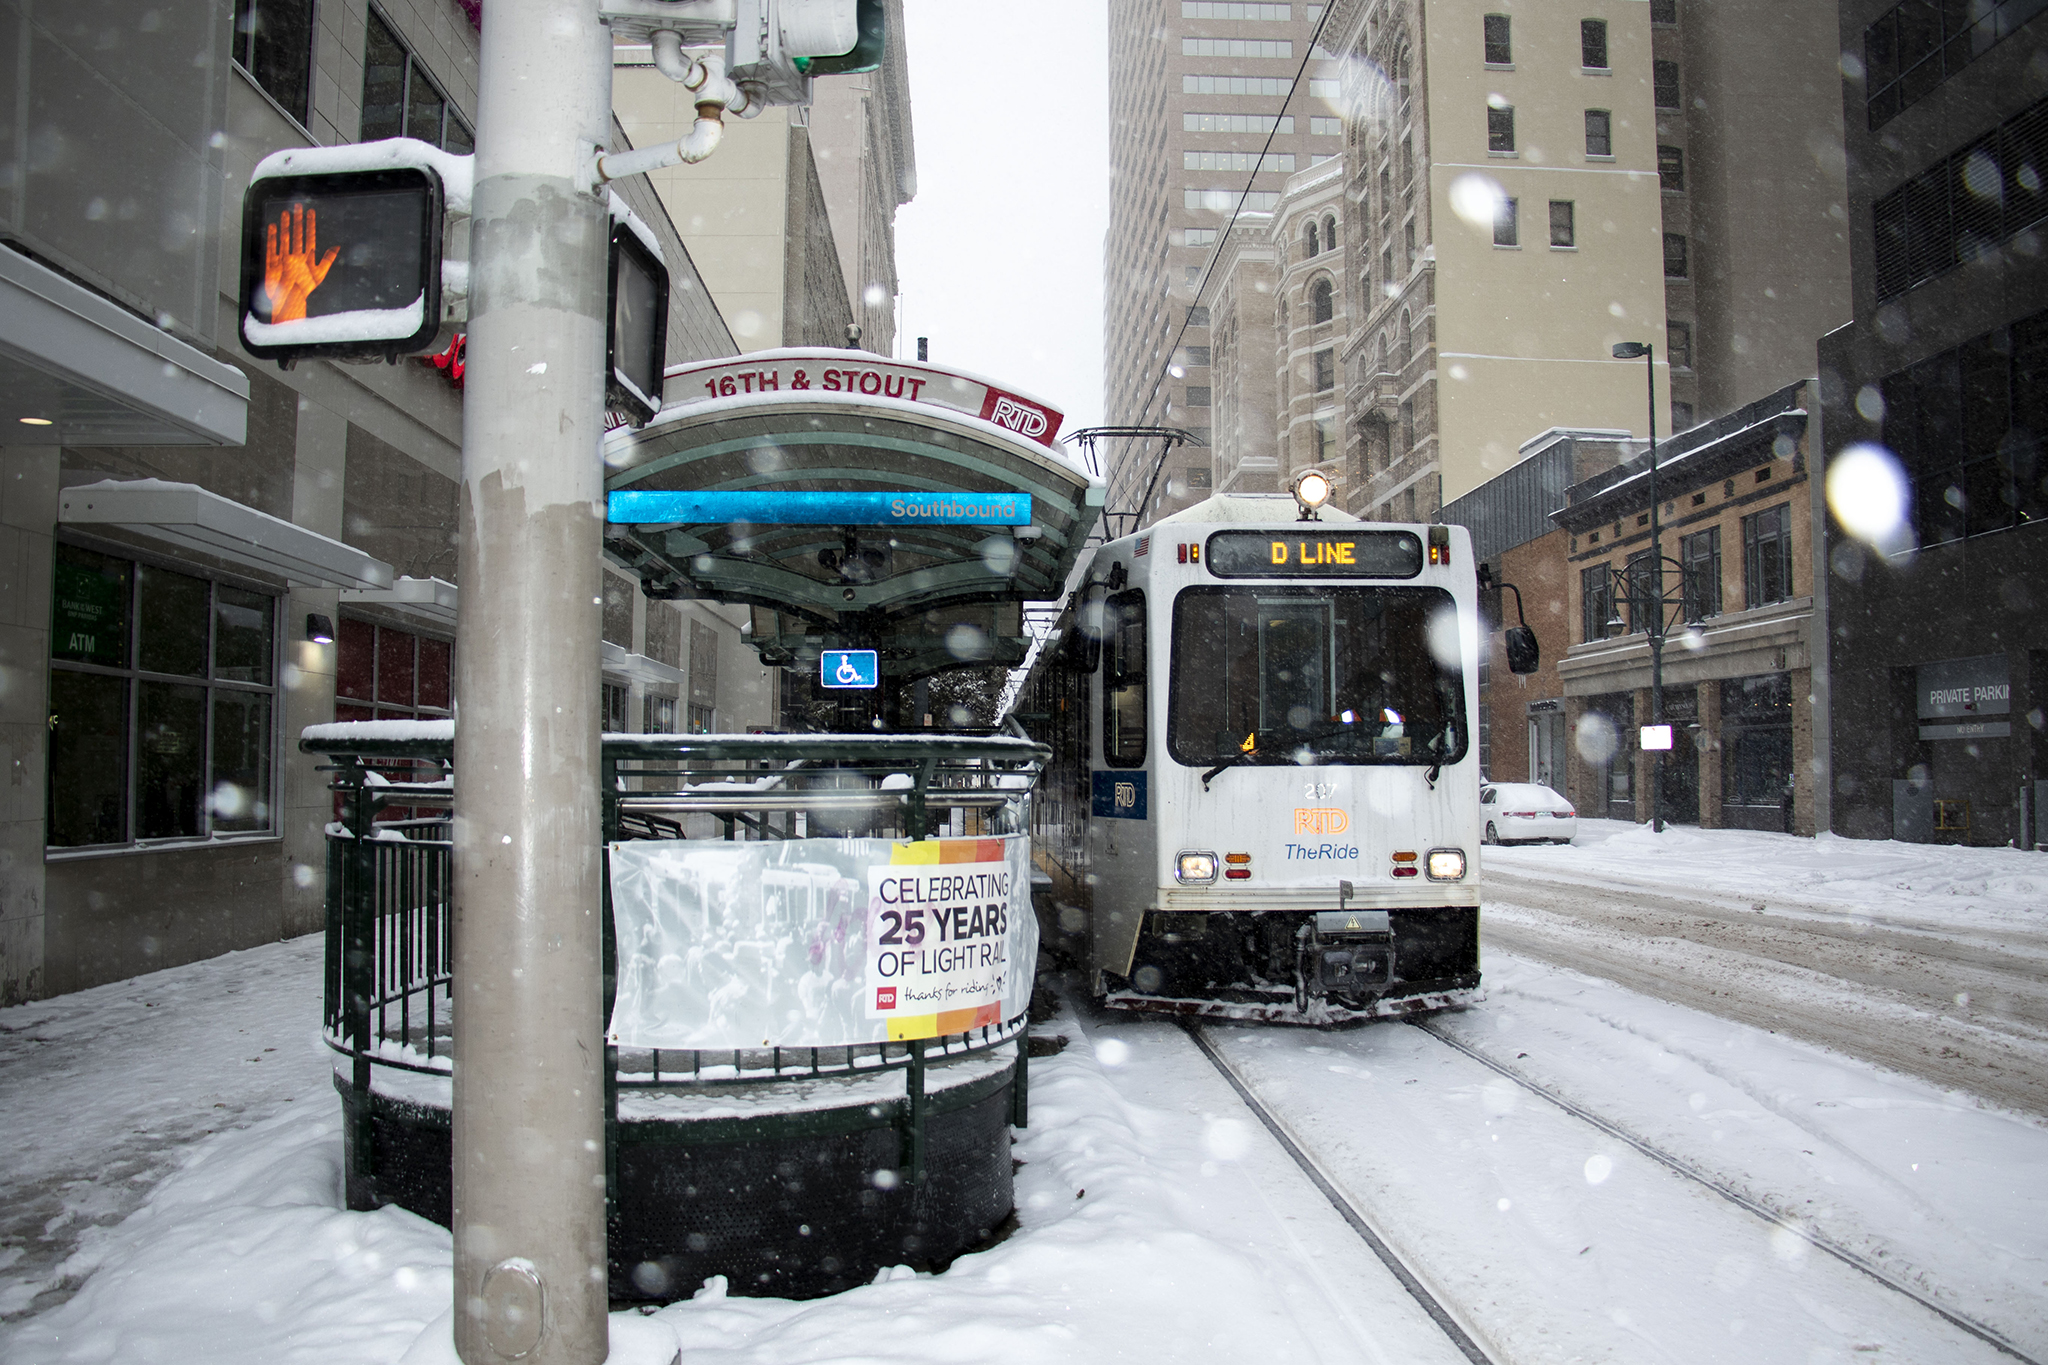 And RTD train downtown on a snowy day in Denver. Oct. 29, 2019.